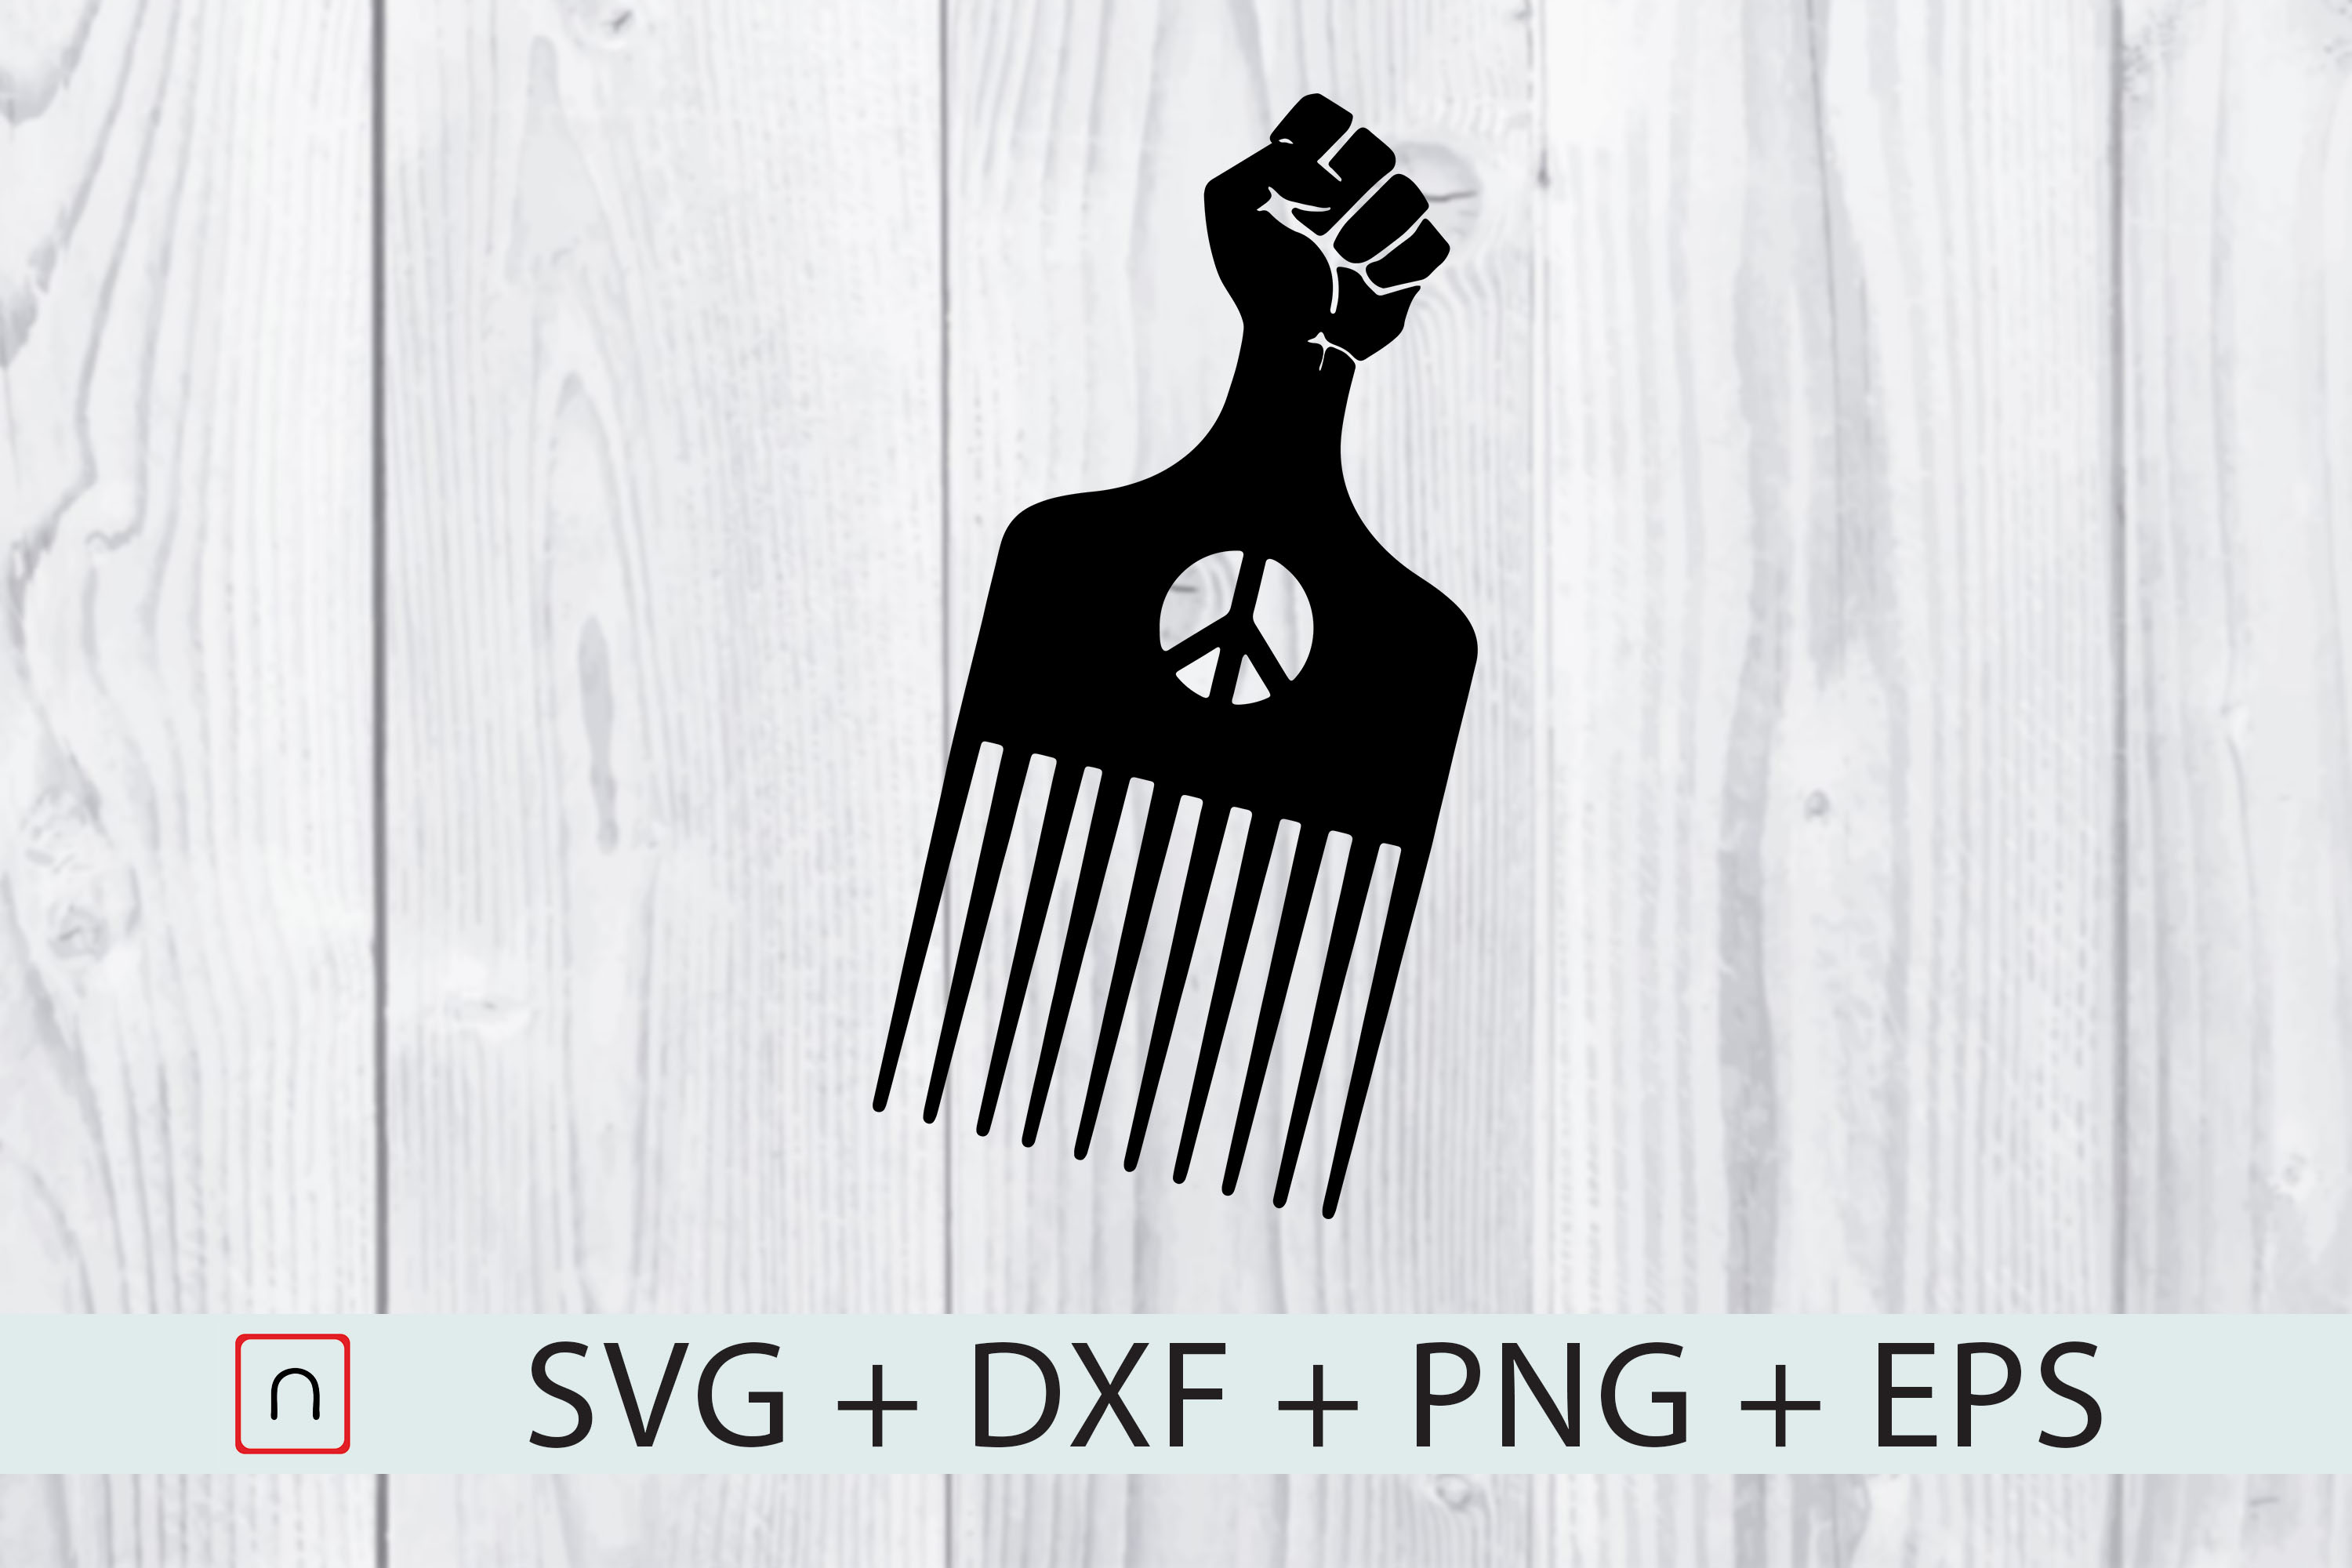 Download Free Comb Black Fist Proud Graphic By Novalia Creative Fabrica for Cricut Explore, Silhouette and other cutting machines.